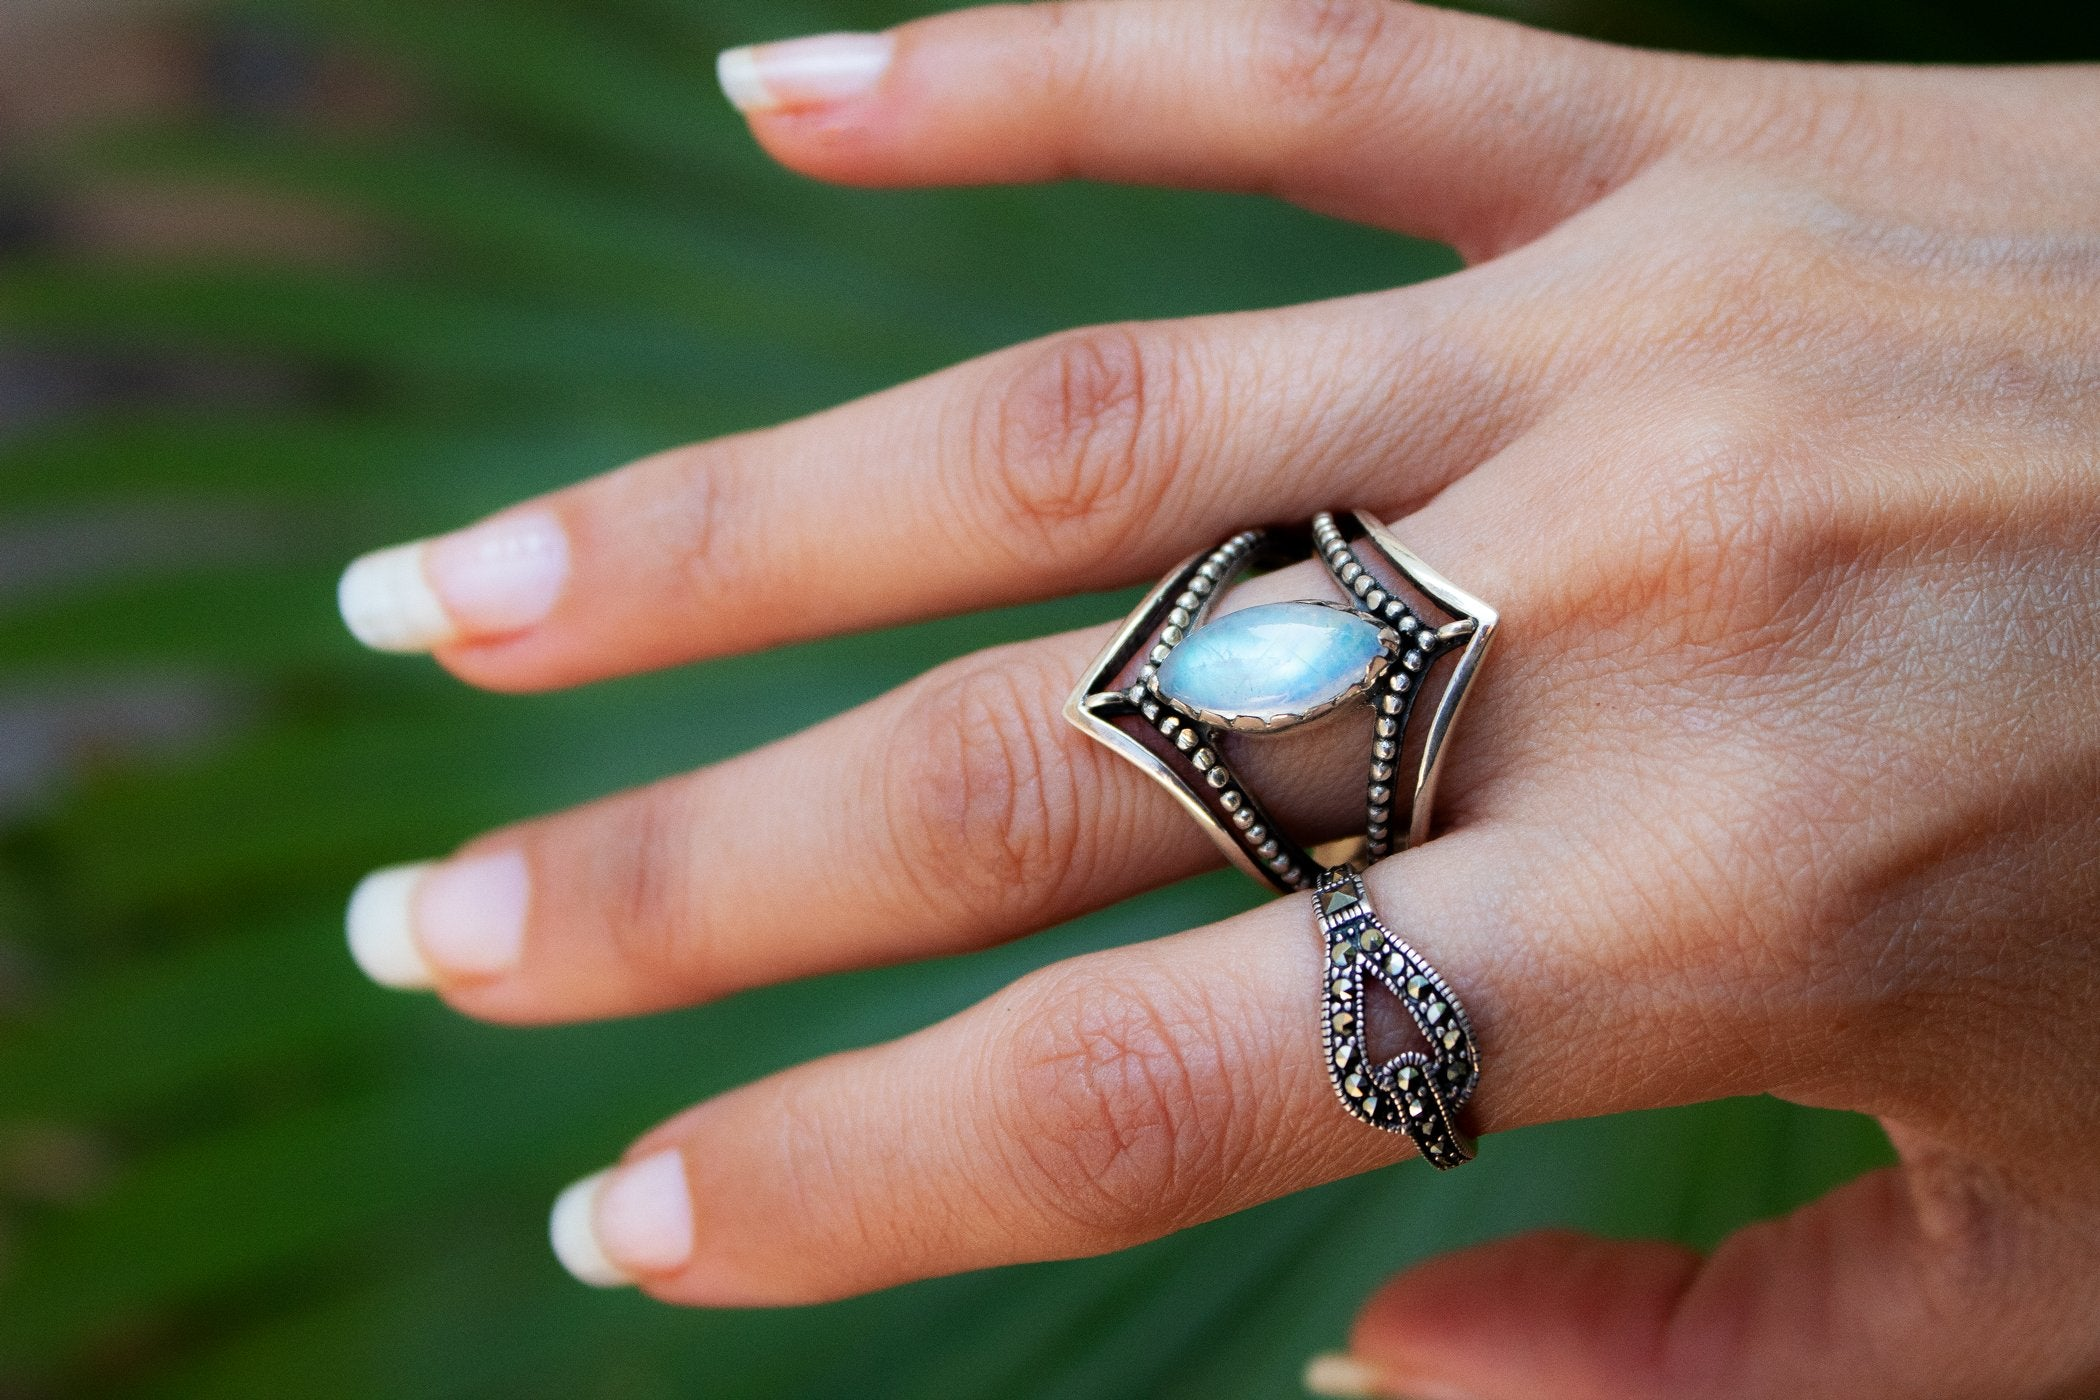 Dual Chevron Band Marquise Shaped Moonstone Ring AR-2041 - Its Ambra